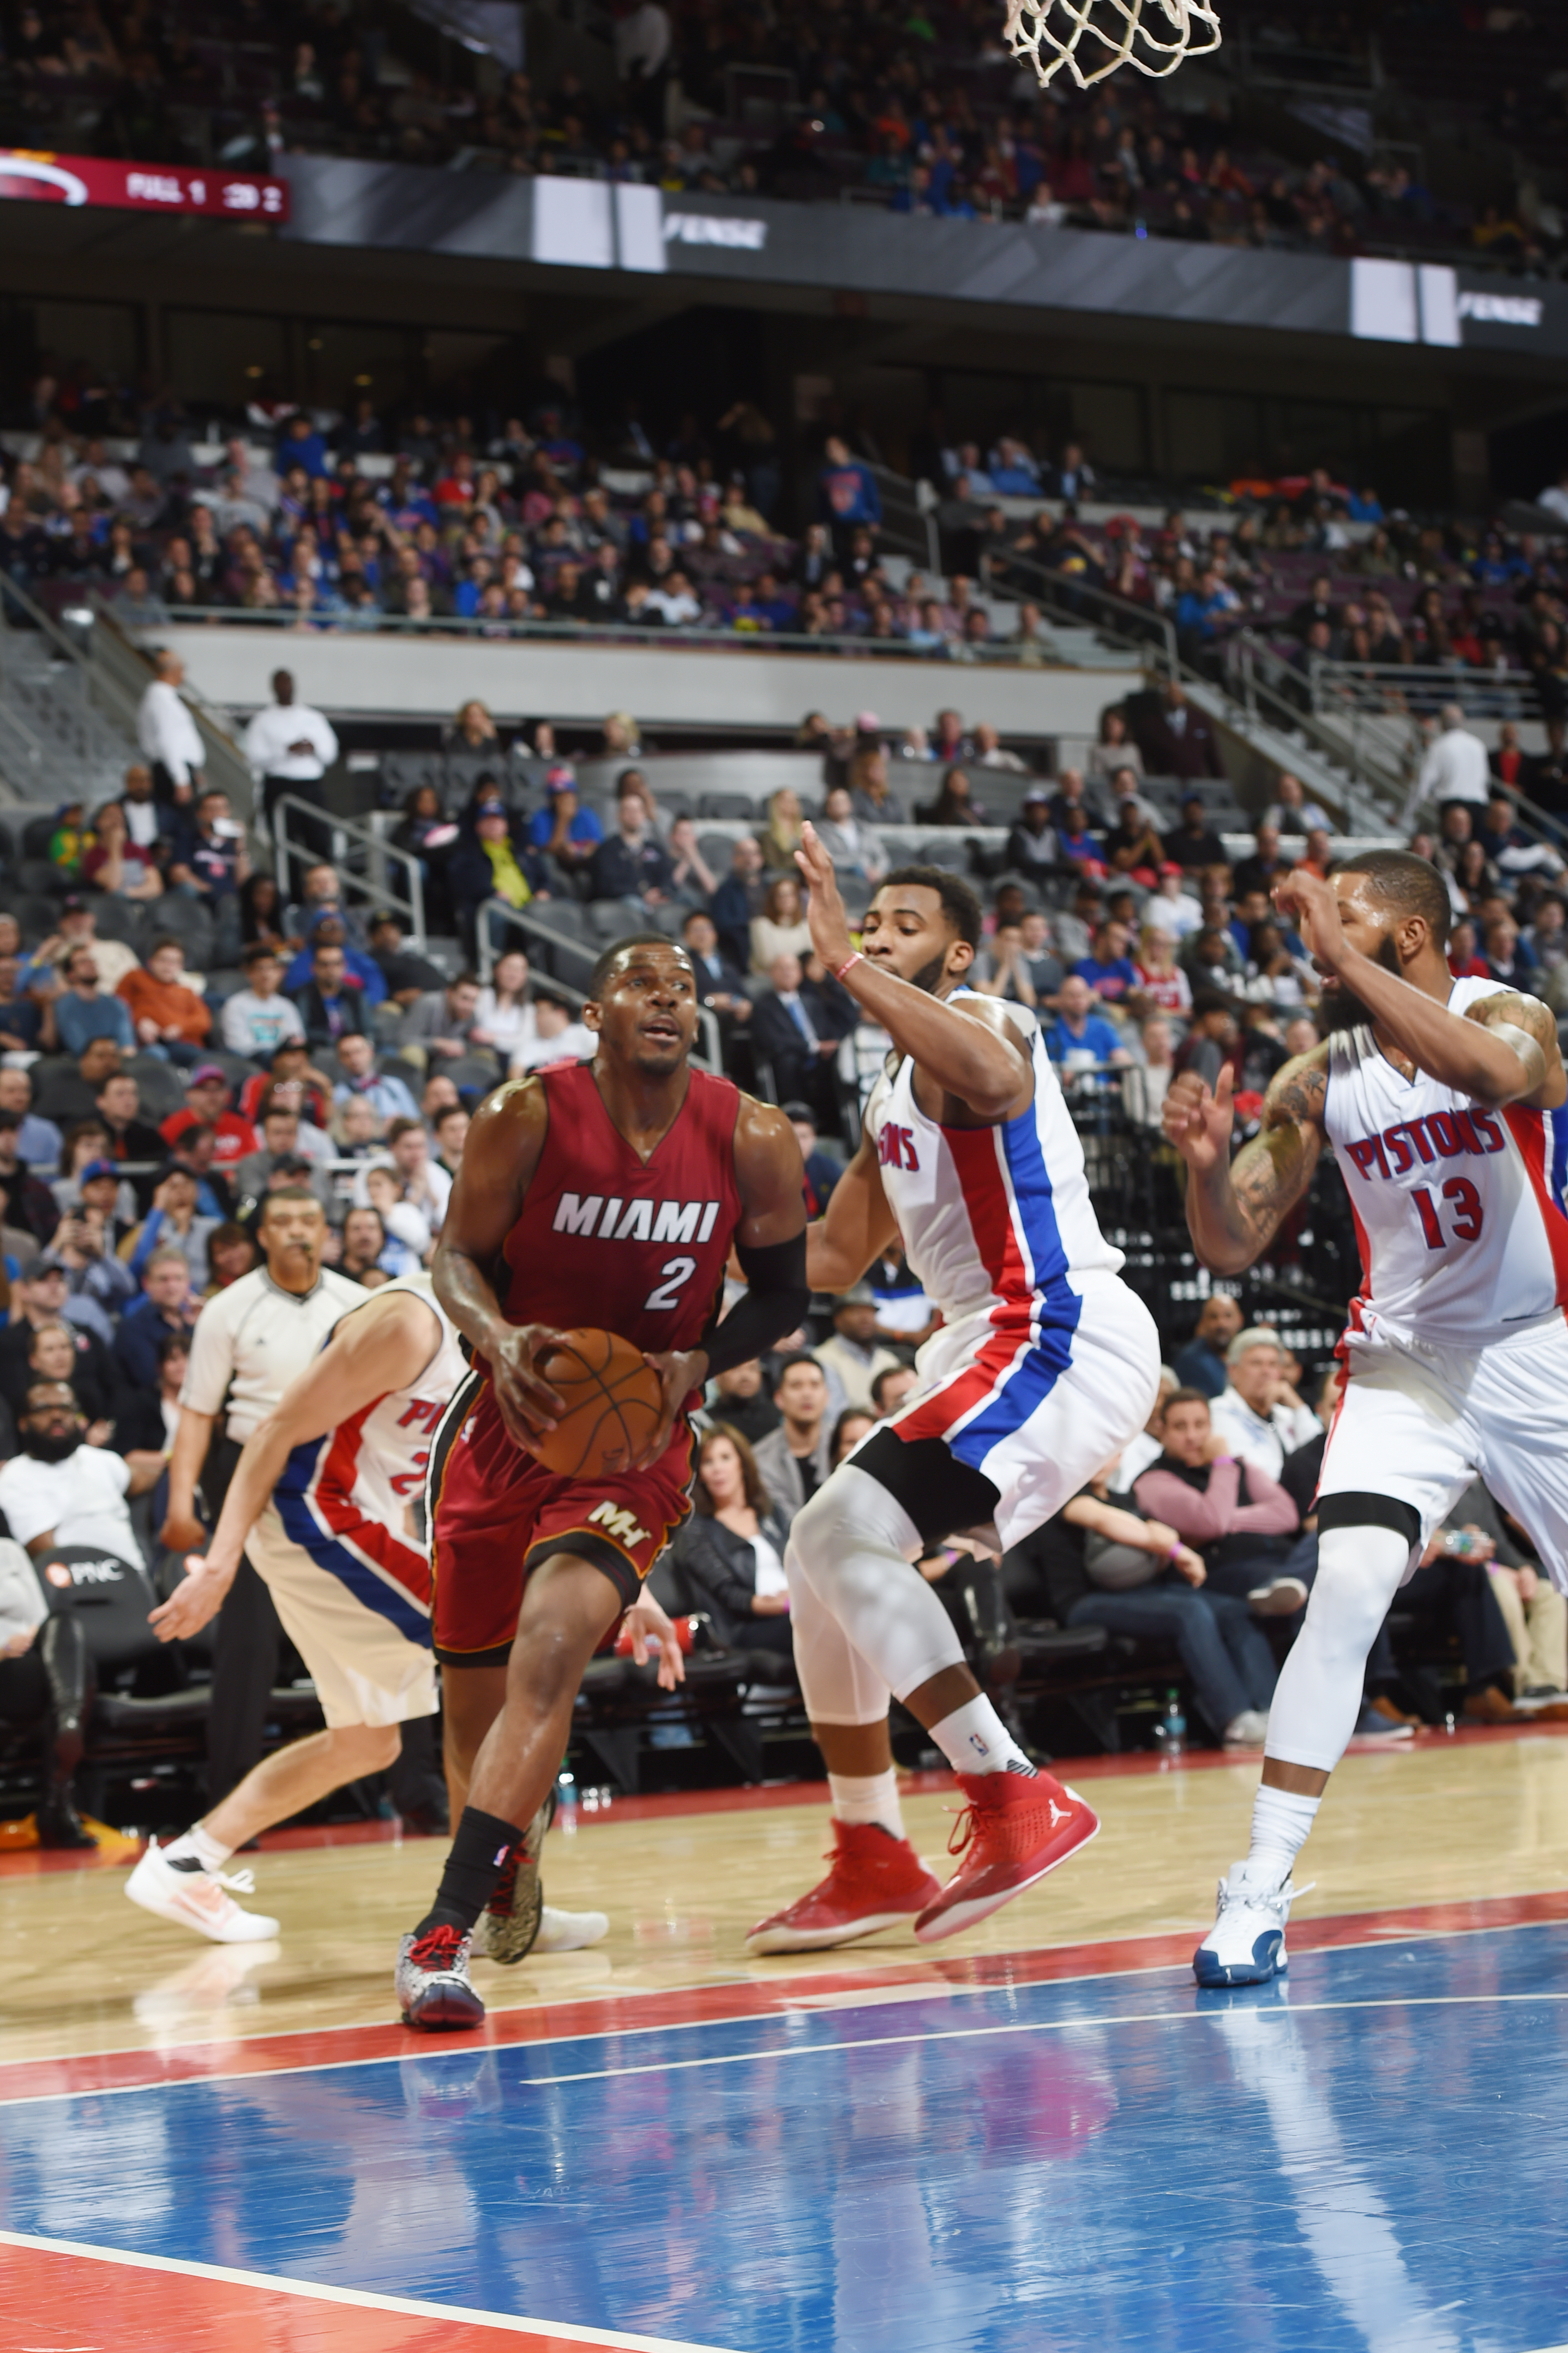 AUBURN HILLS, MI  - APRIL 12: Joe Johnson #2 of the Miami Heat drives to the basket against the Detroit Pistons during the game on April 12, 2016 at The Palace of Auburn Hills in AUBURN HILLS, Michigan. (Photo by Allen Einstein/NBAE via Getty Images)